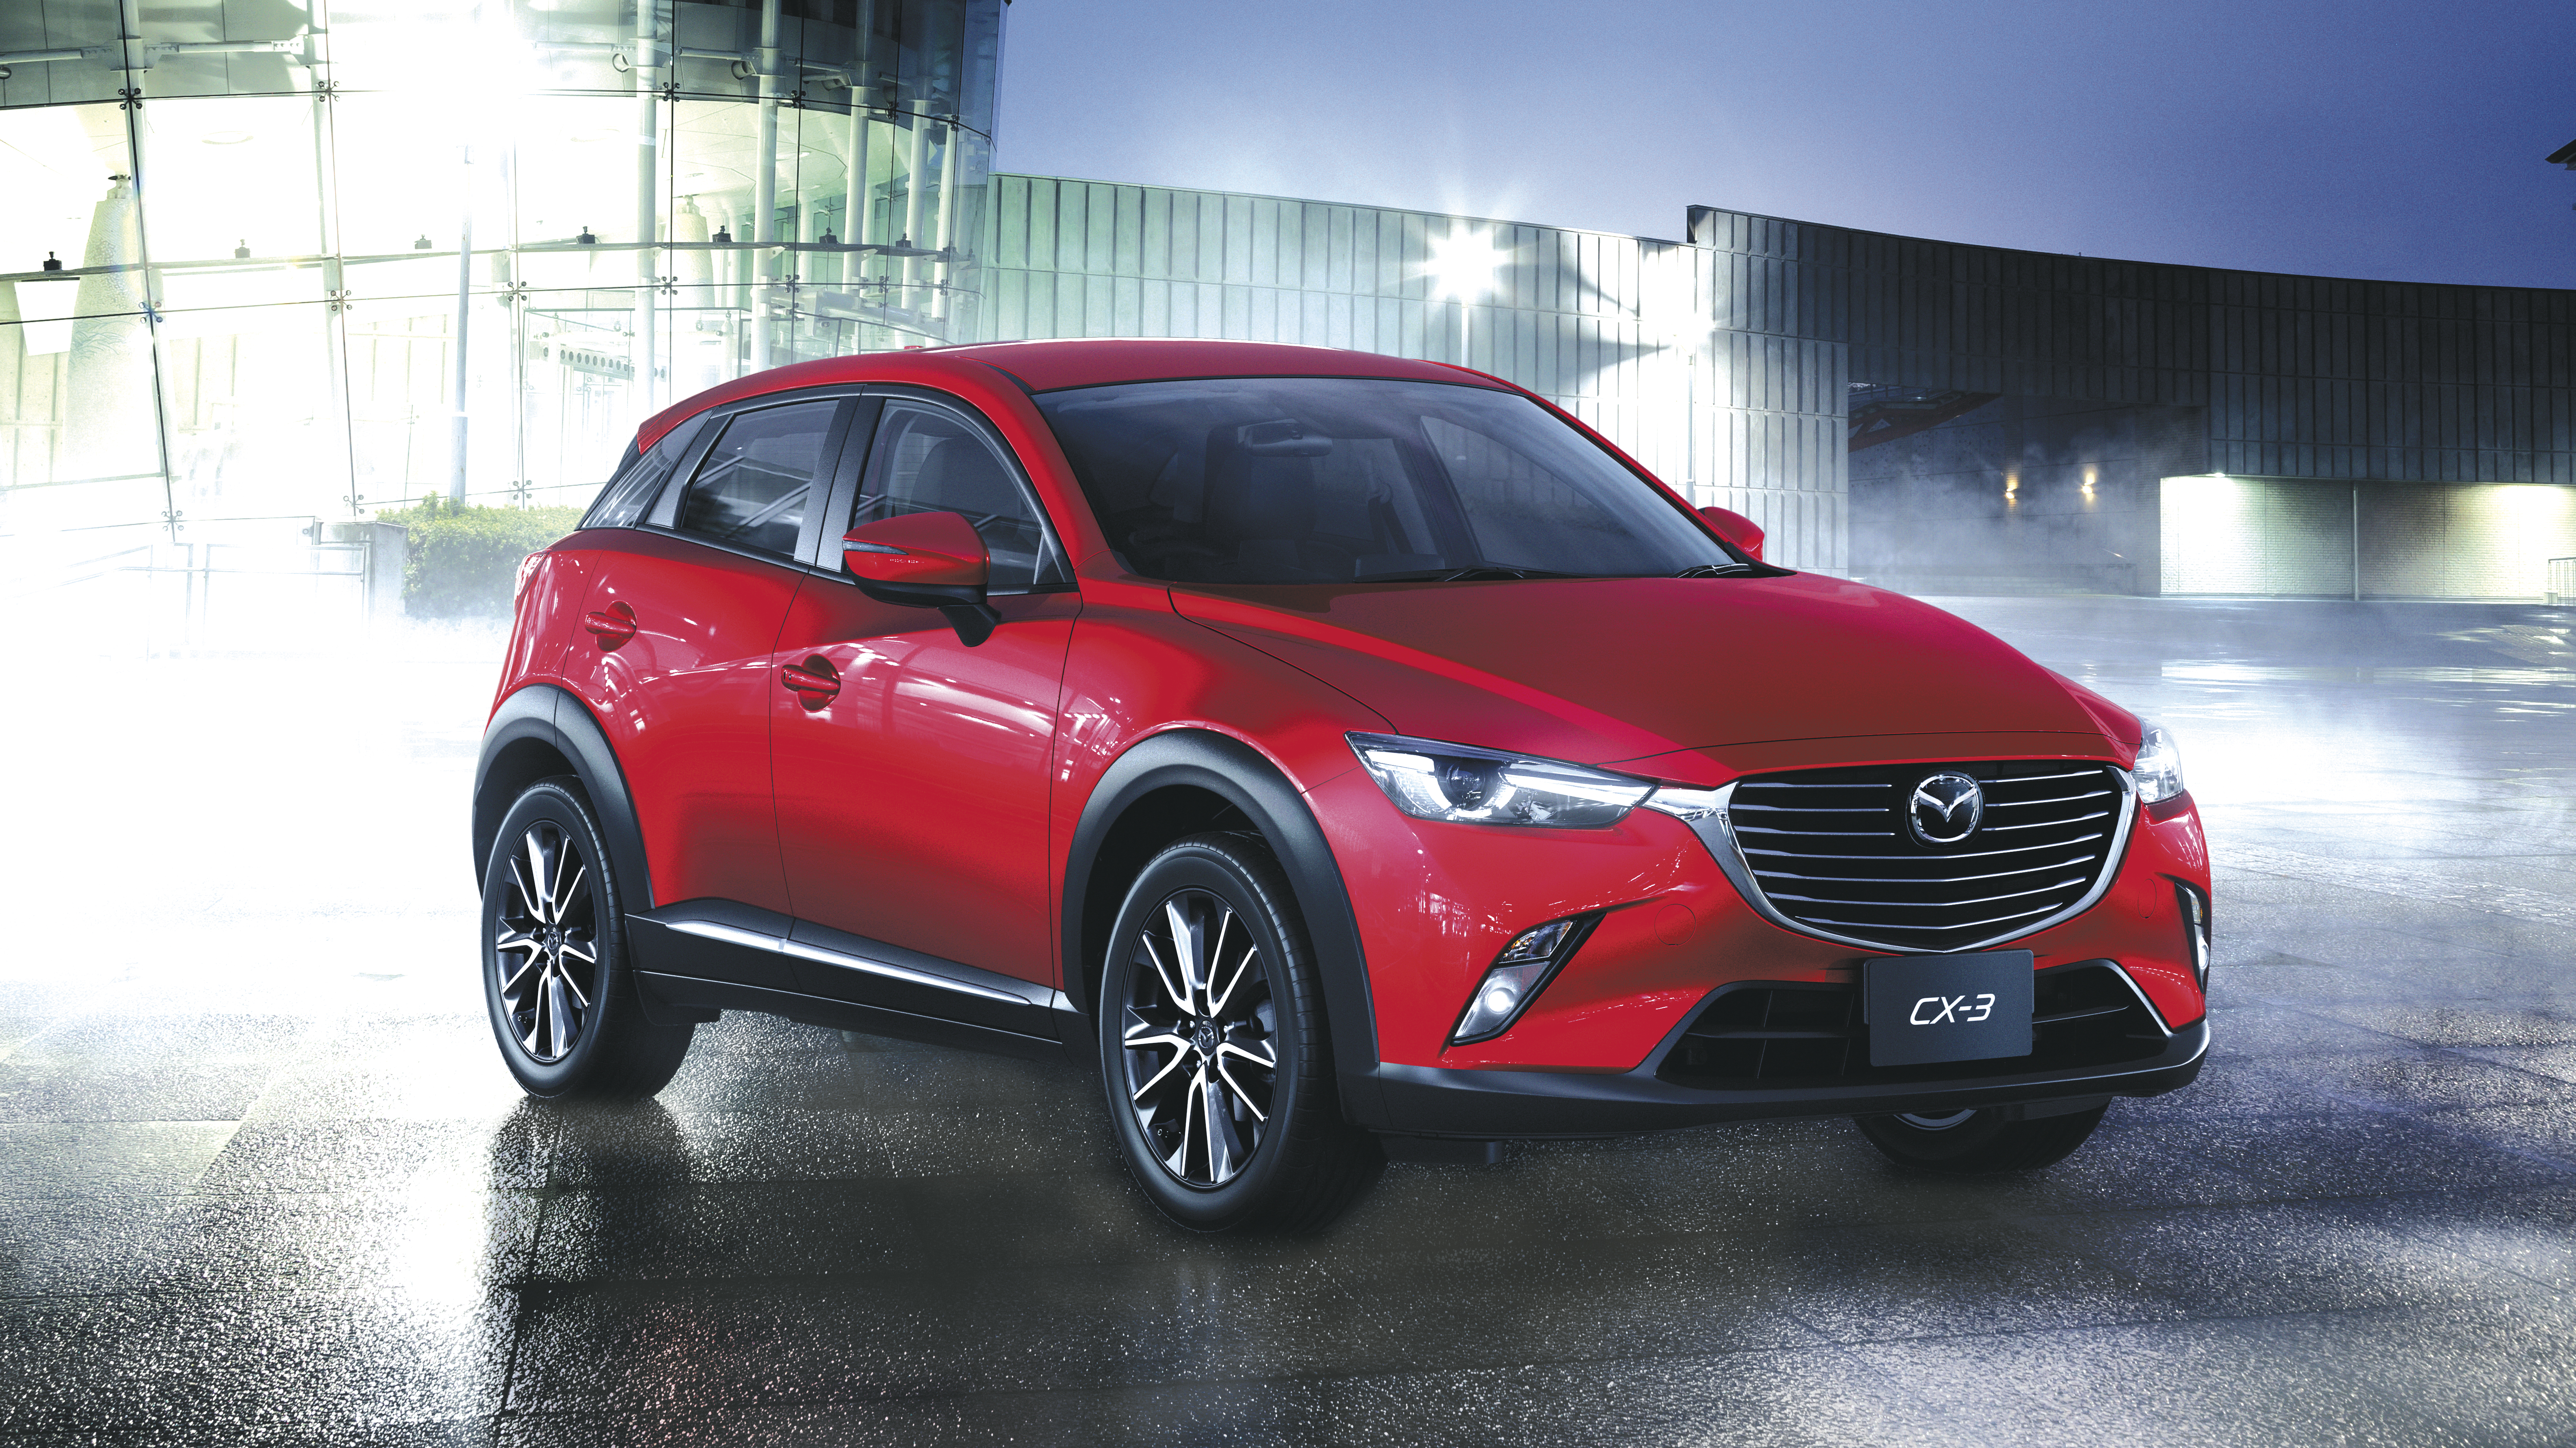 res crossover inside download high image mazda pricing suv release press cx